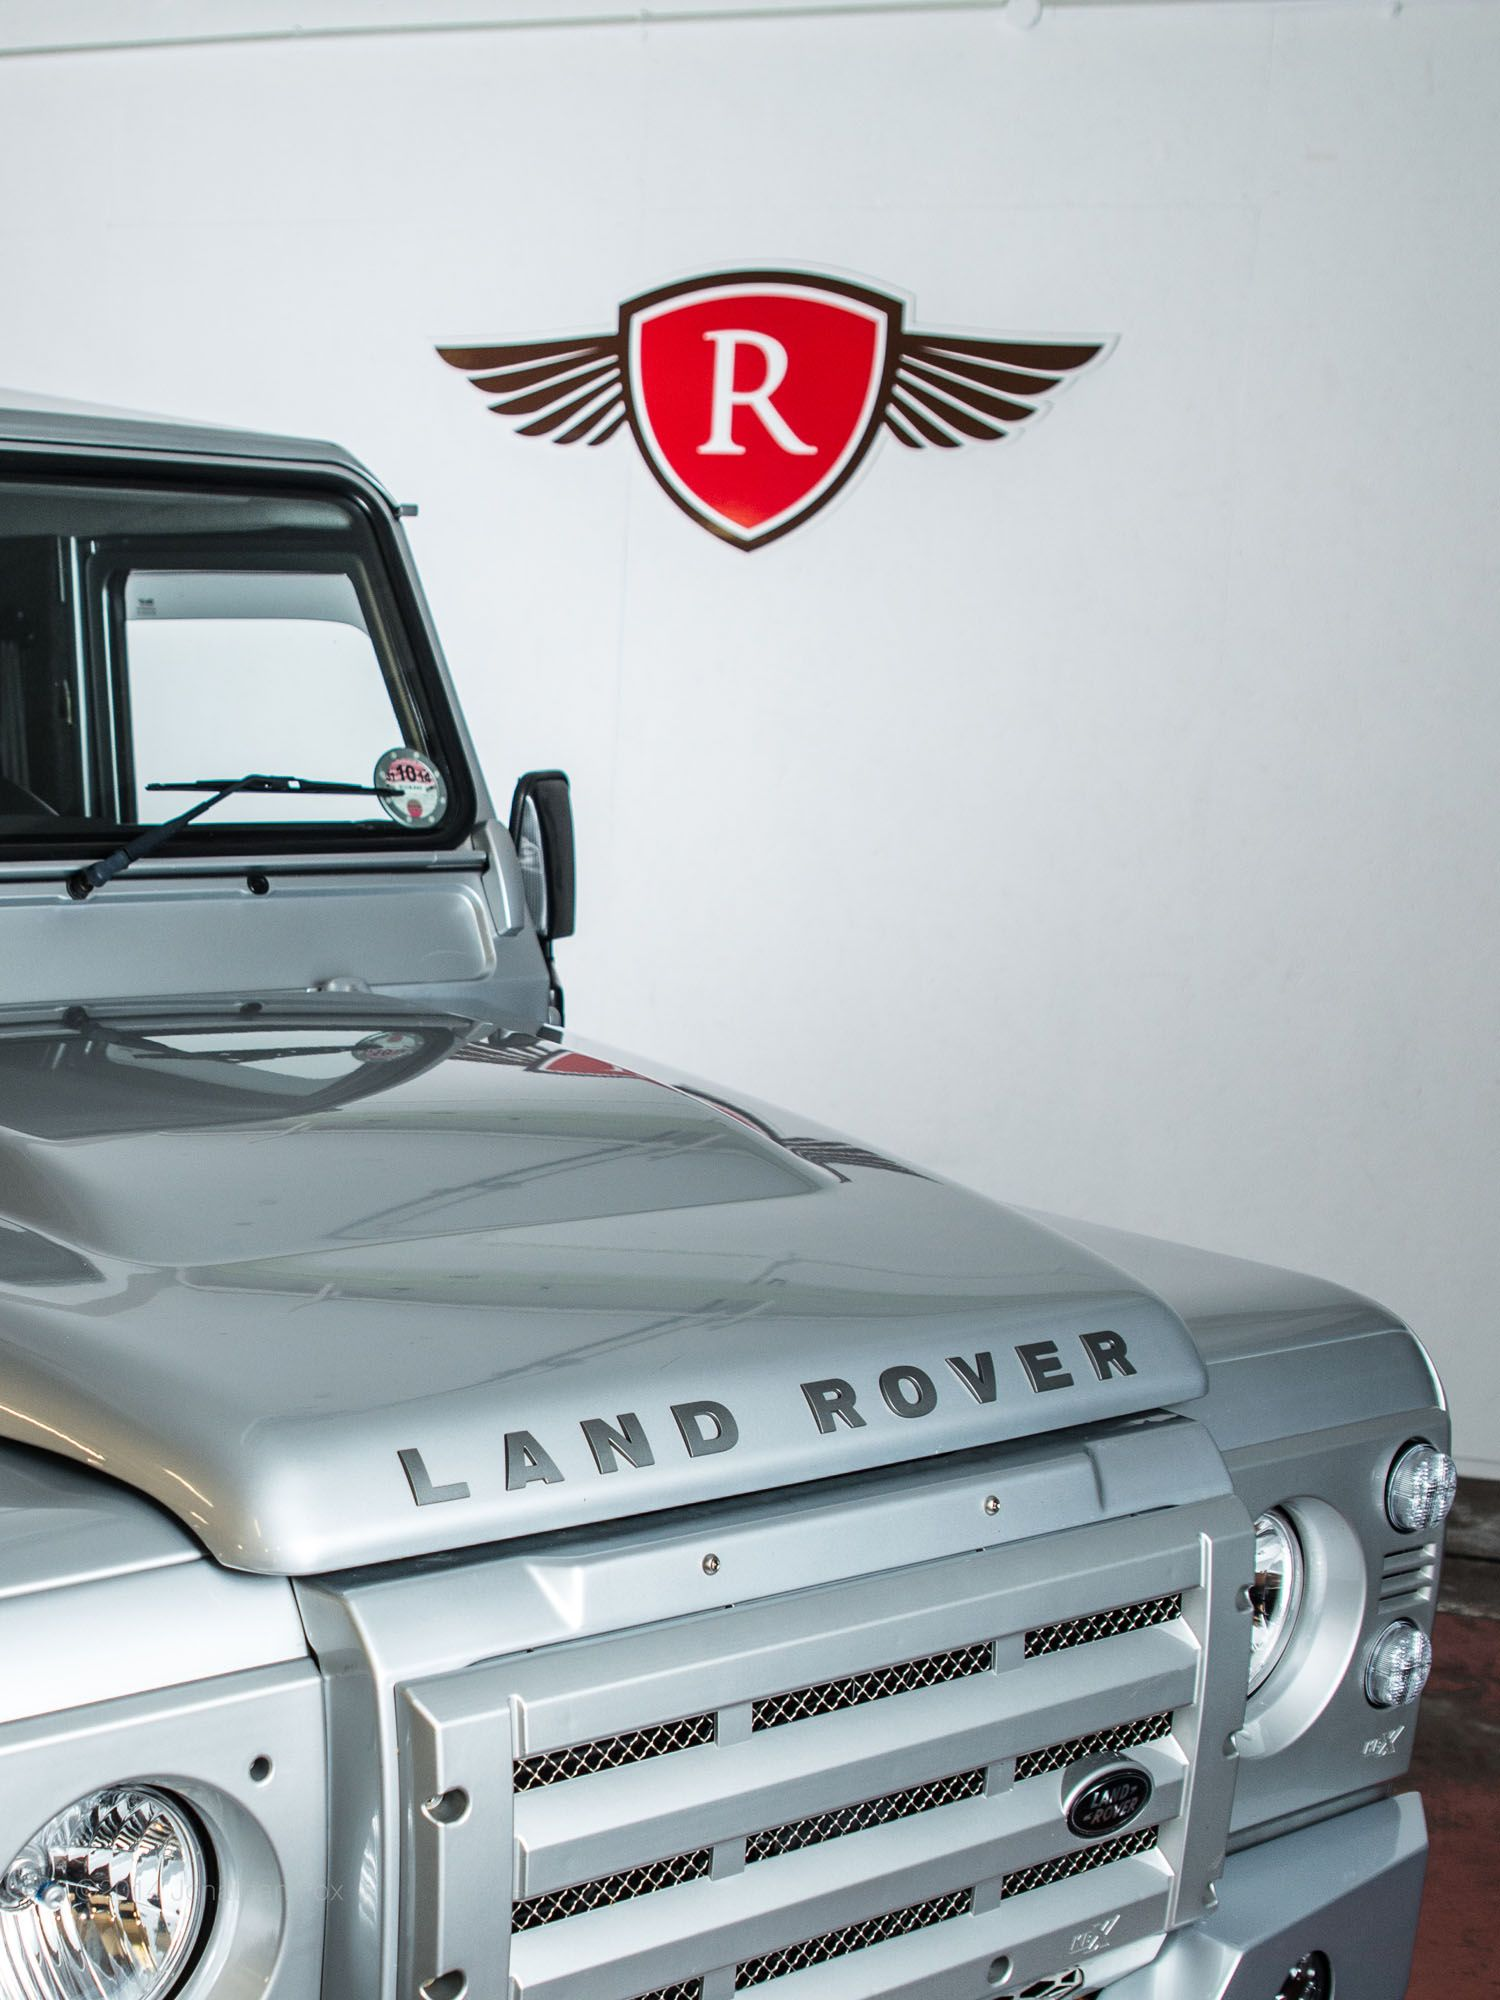 Land rover defender www.ruskindesign.co.uk with ruskin